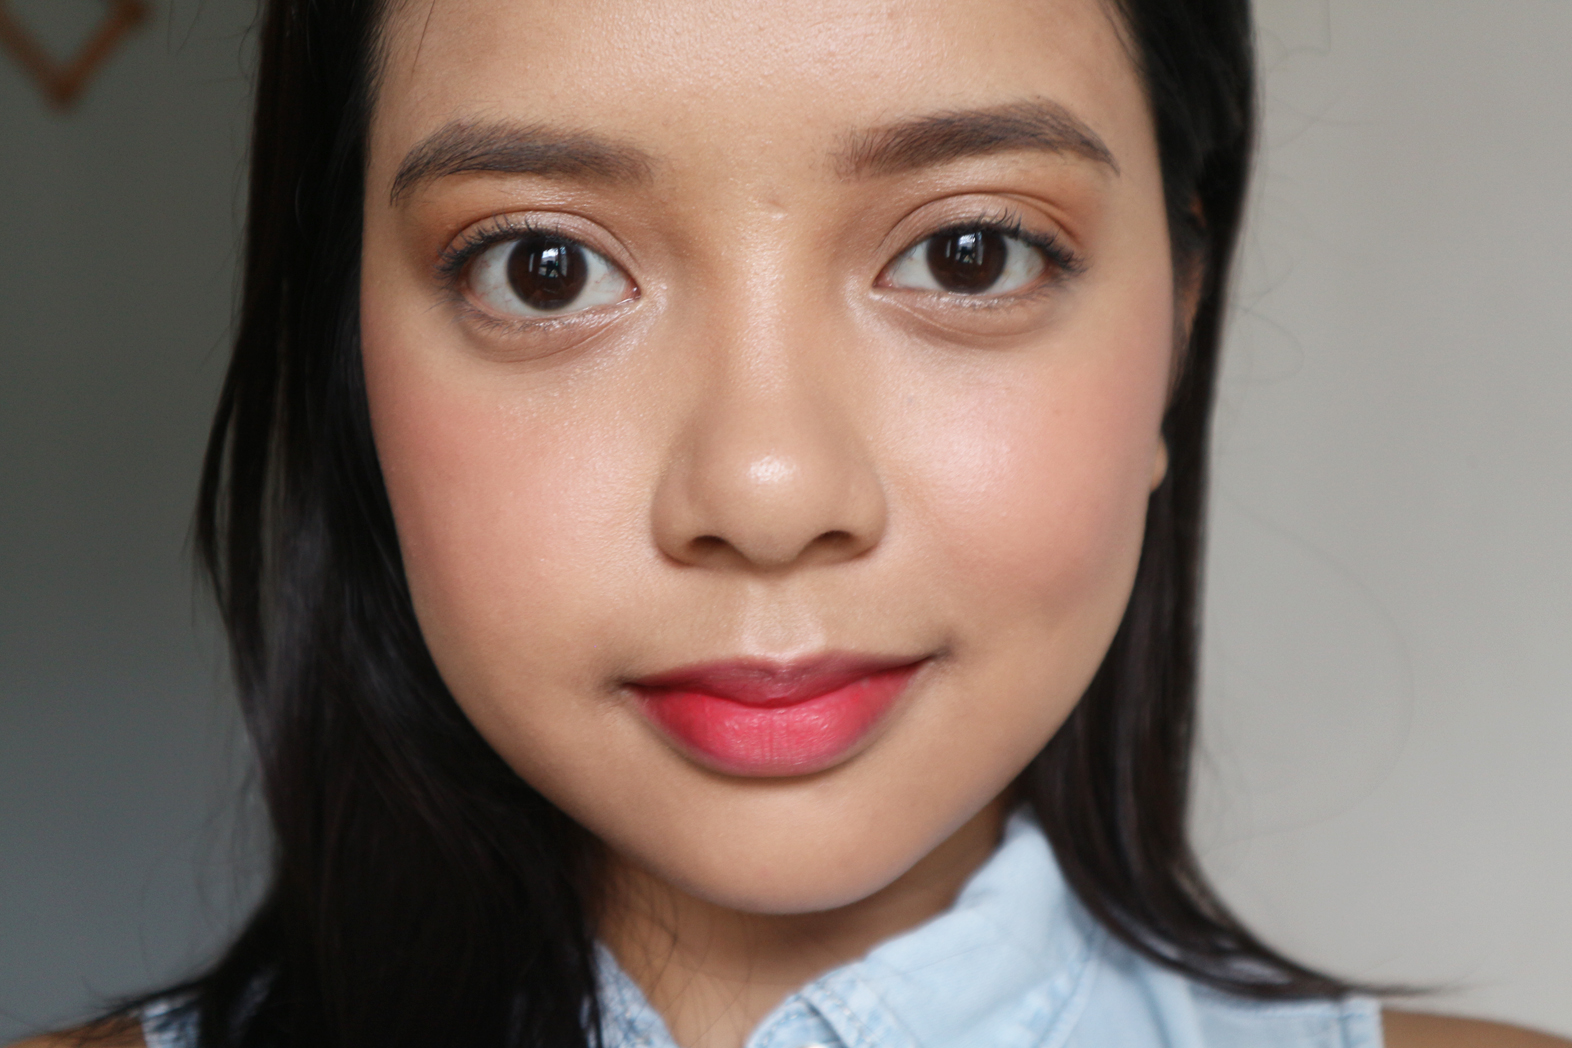 Makeup look using the Cream Cheek Tint in  04 Plum Cherry  and the Lip Tint Matte in  02 Red